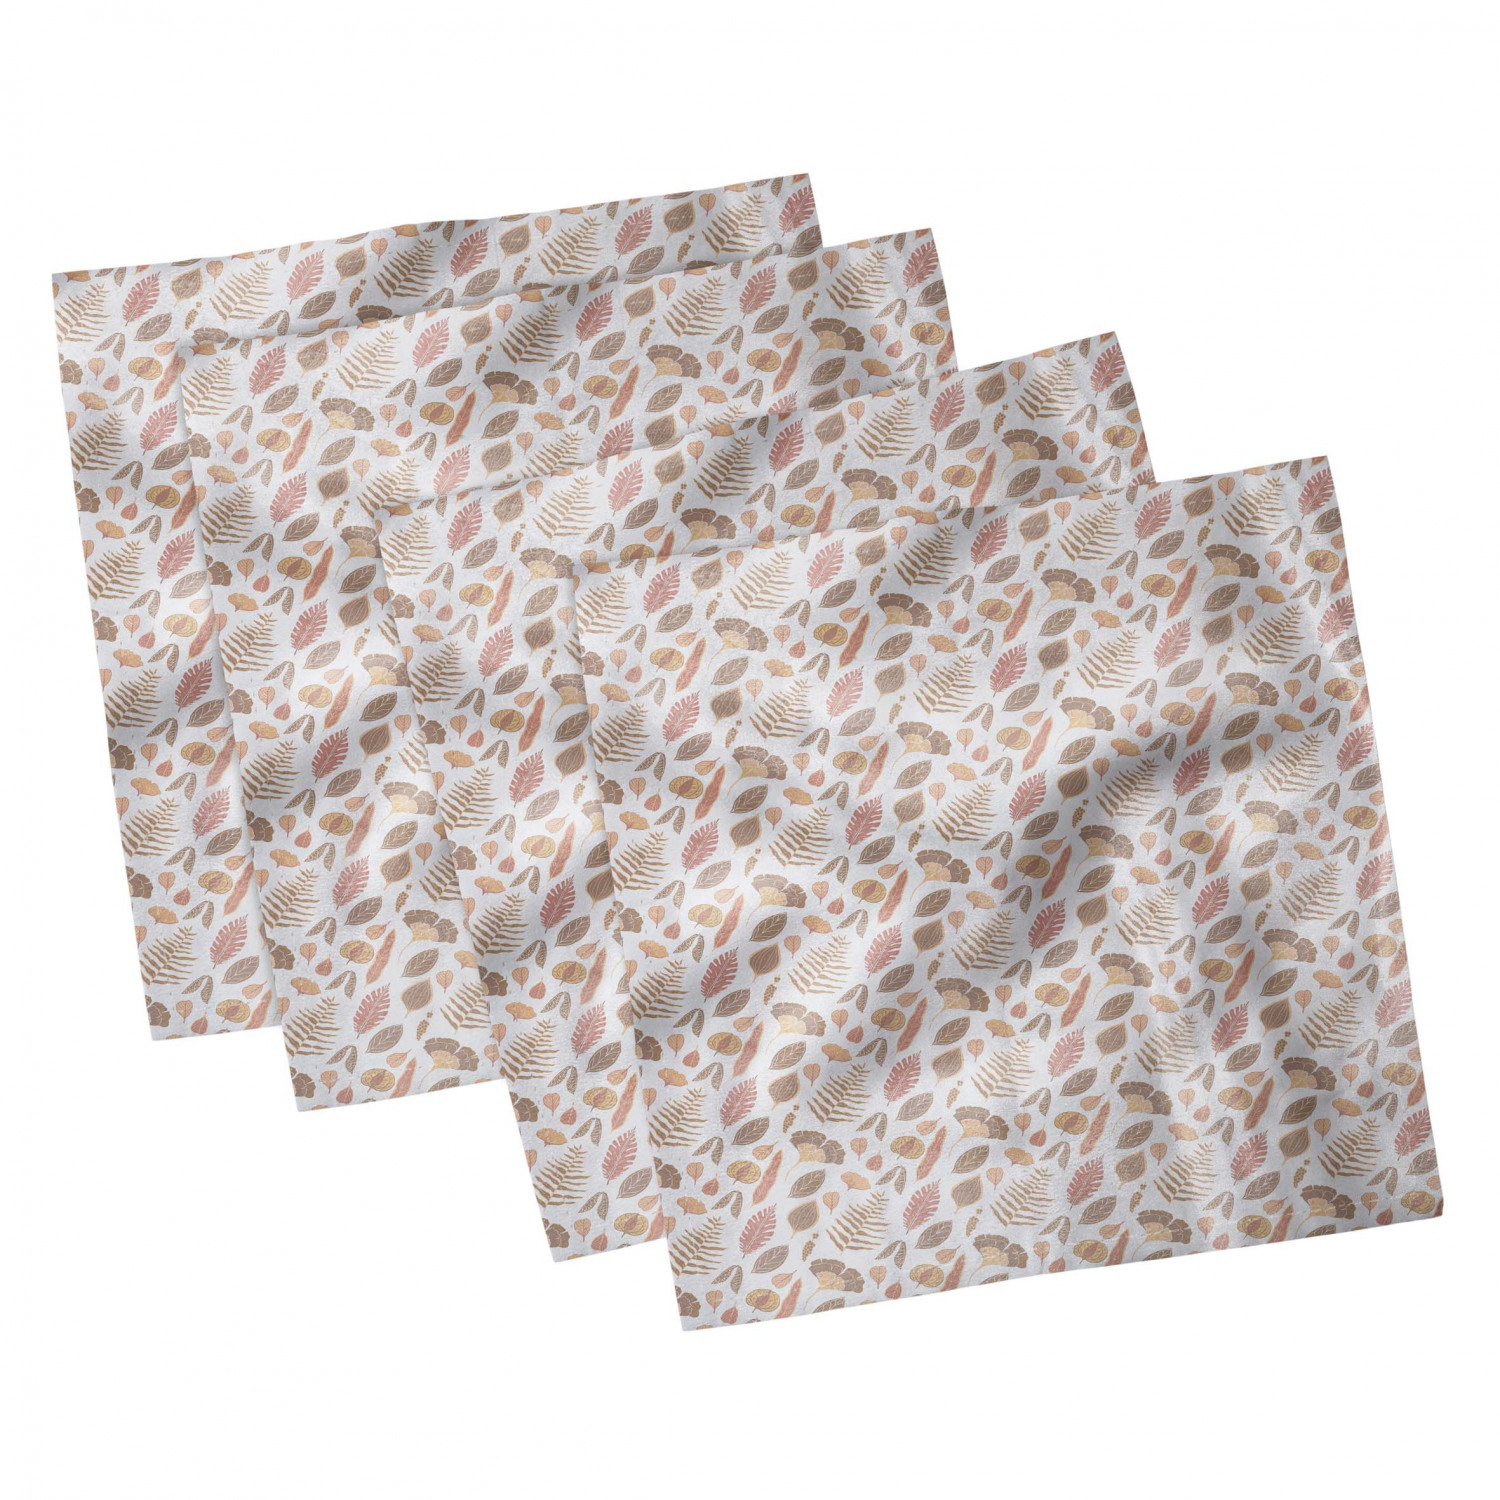 thumbnail 13 - Ambesonne-Autumn-Fall-Decorative-Satin-Napkins-Set-of-4-Party-Dinner-Fabric